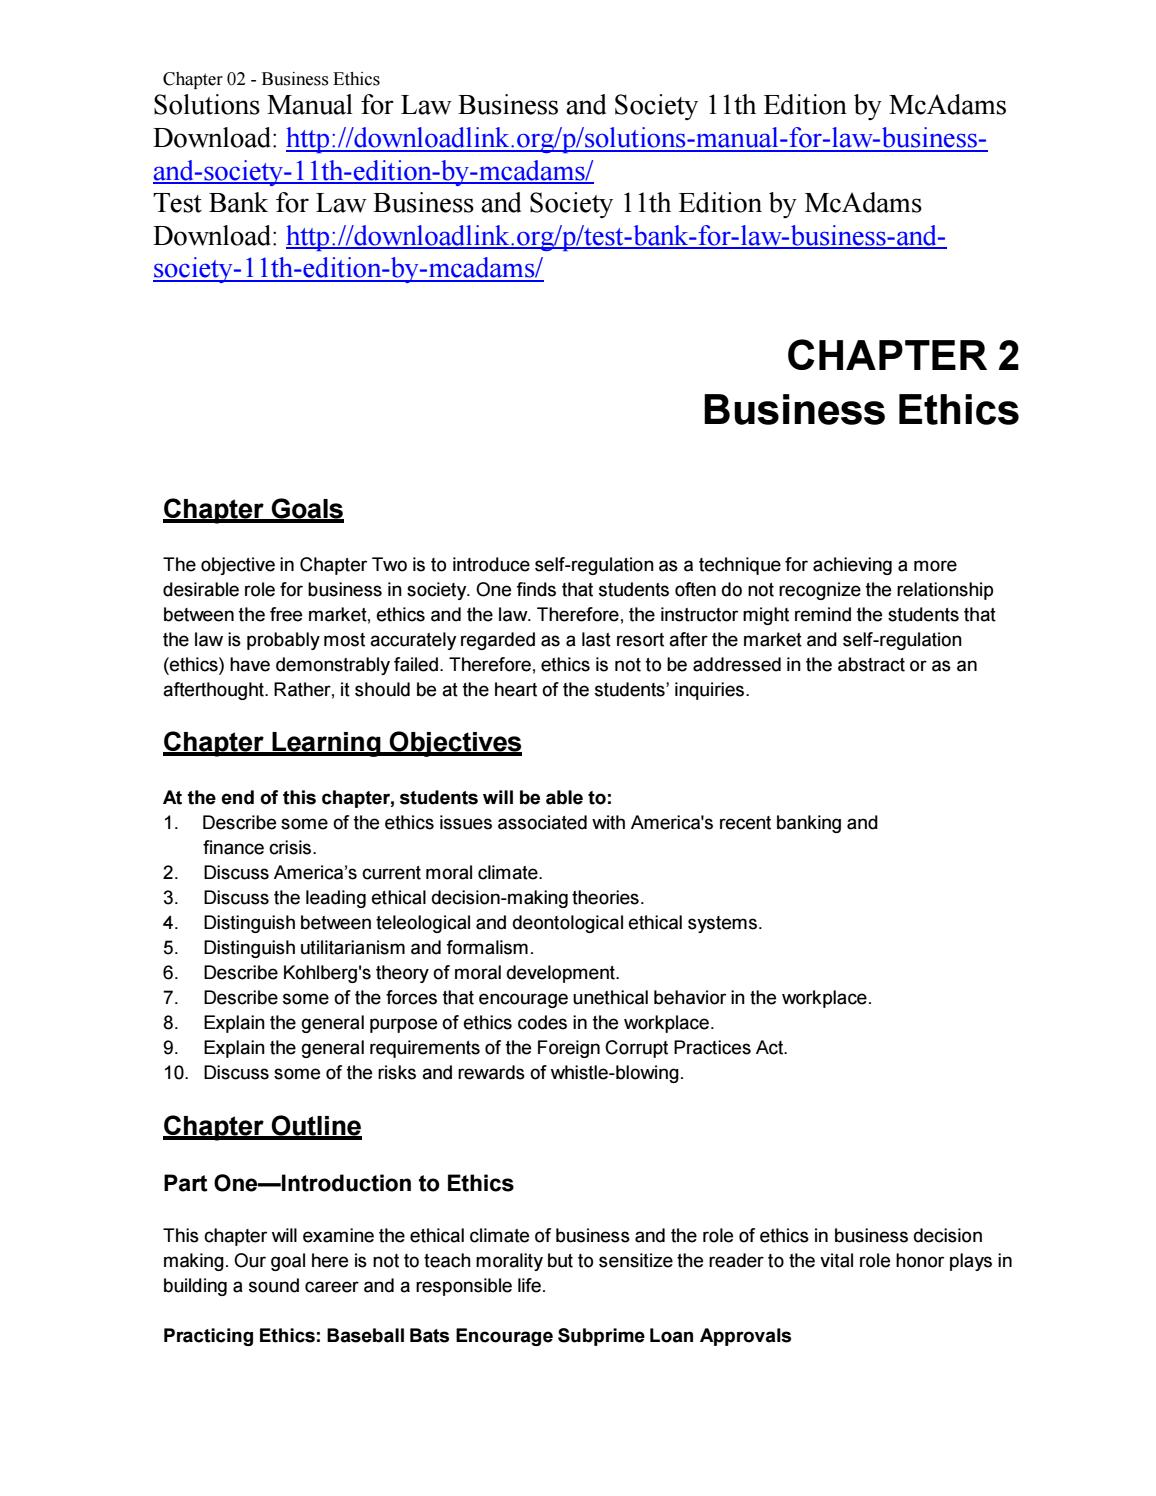 Law business and society 11th edition by mcadams test bank